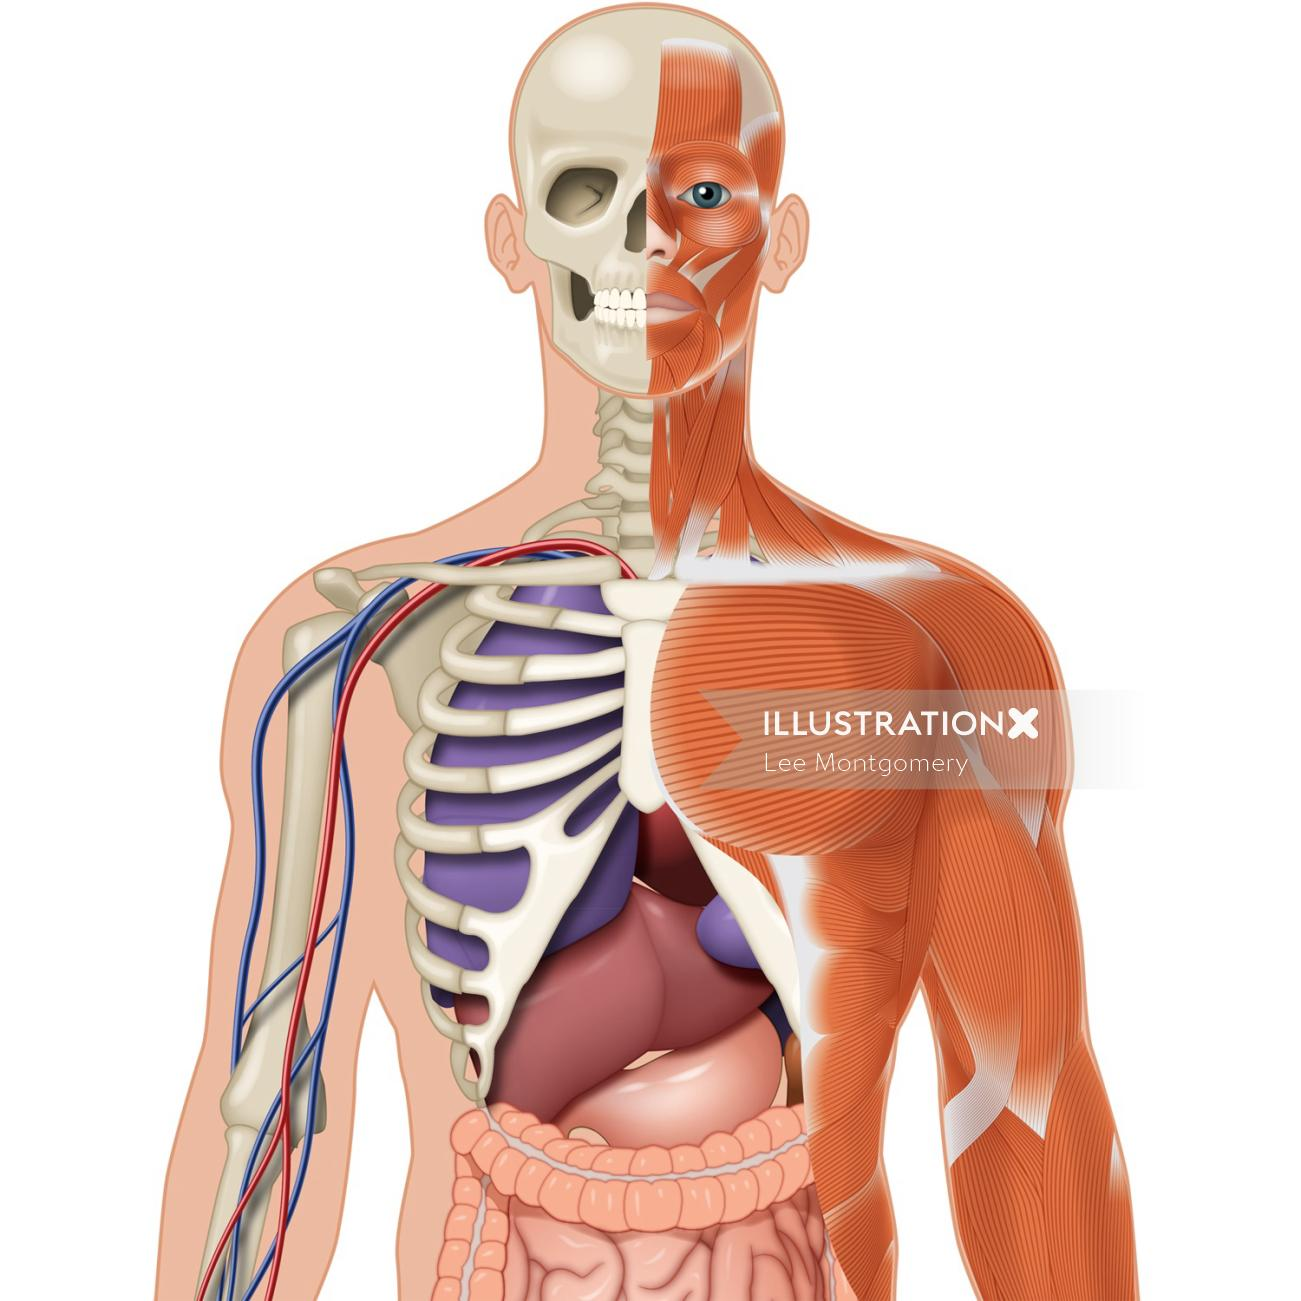 Illustration of human body